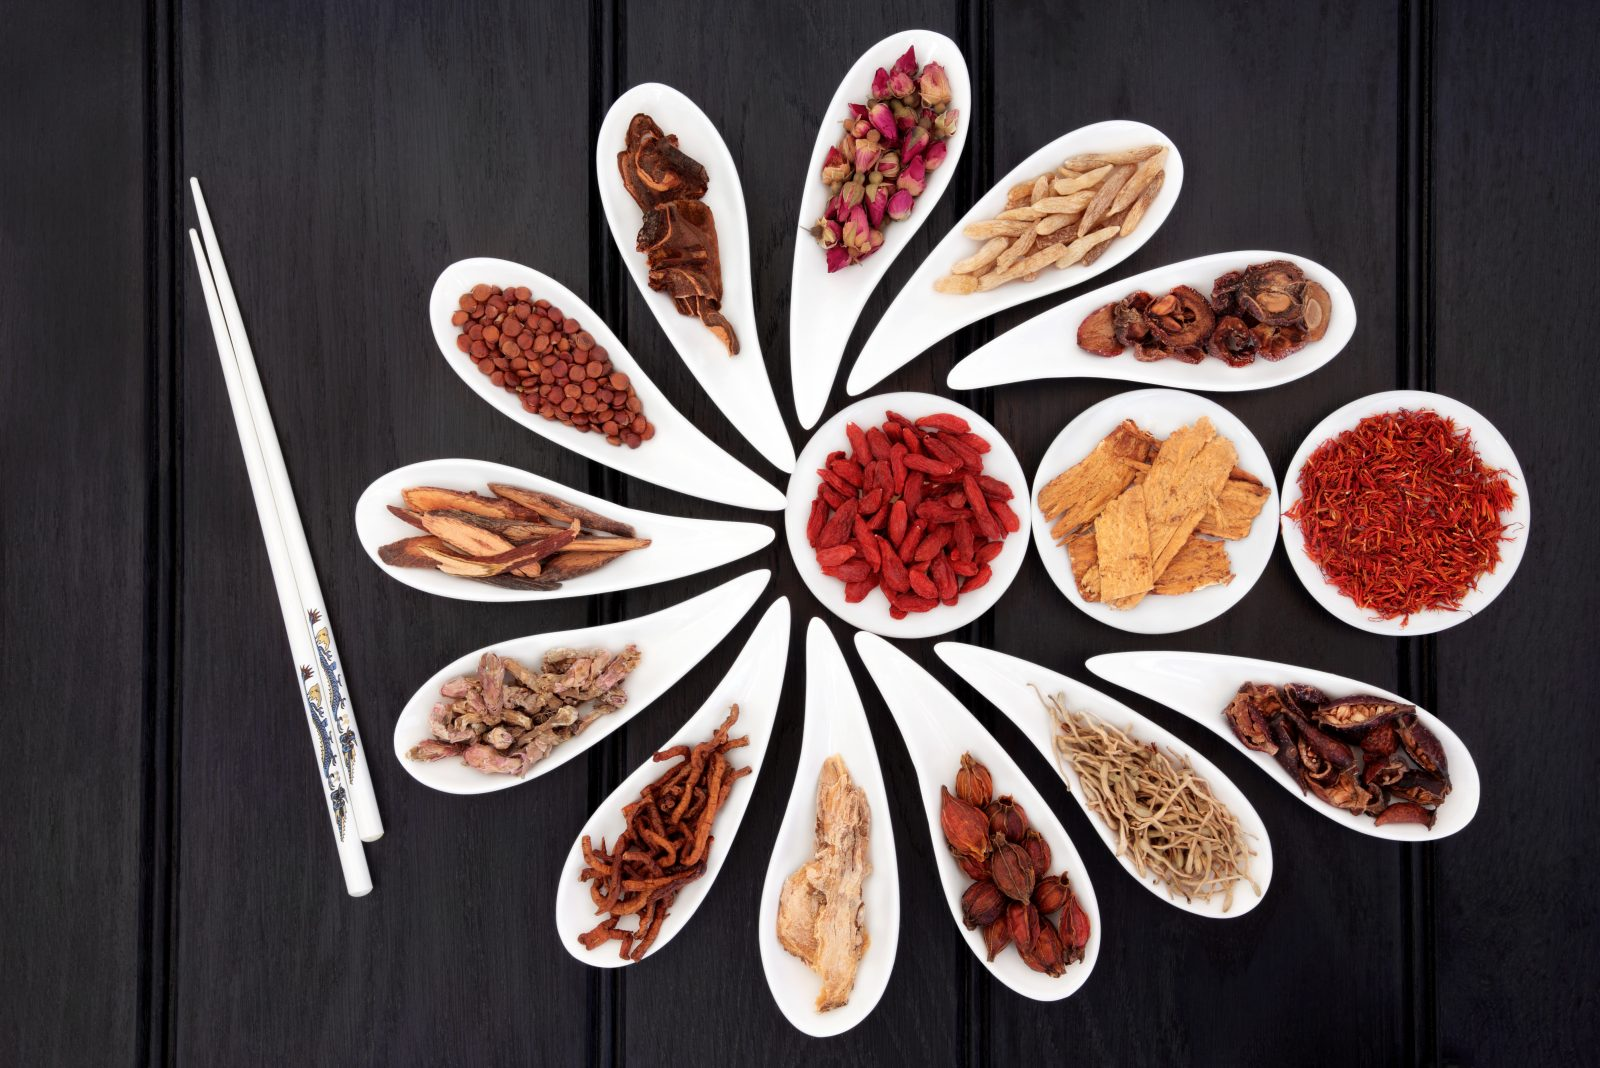 Chinese herbal medicine selection in white china bowls with chopsticks.